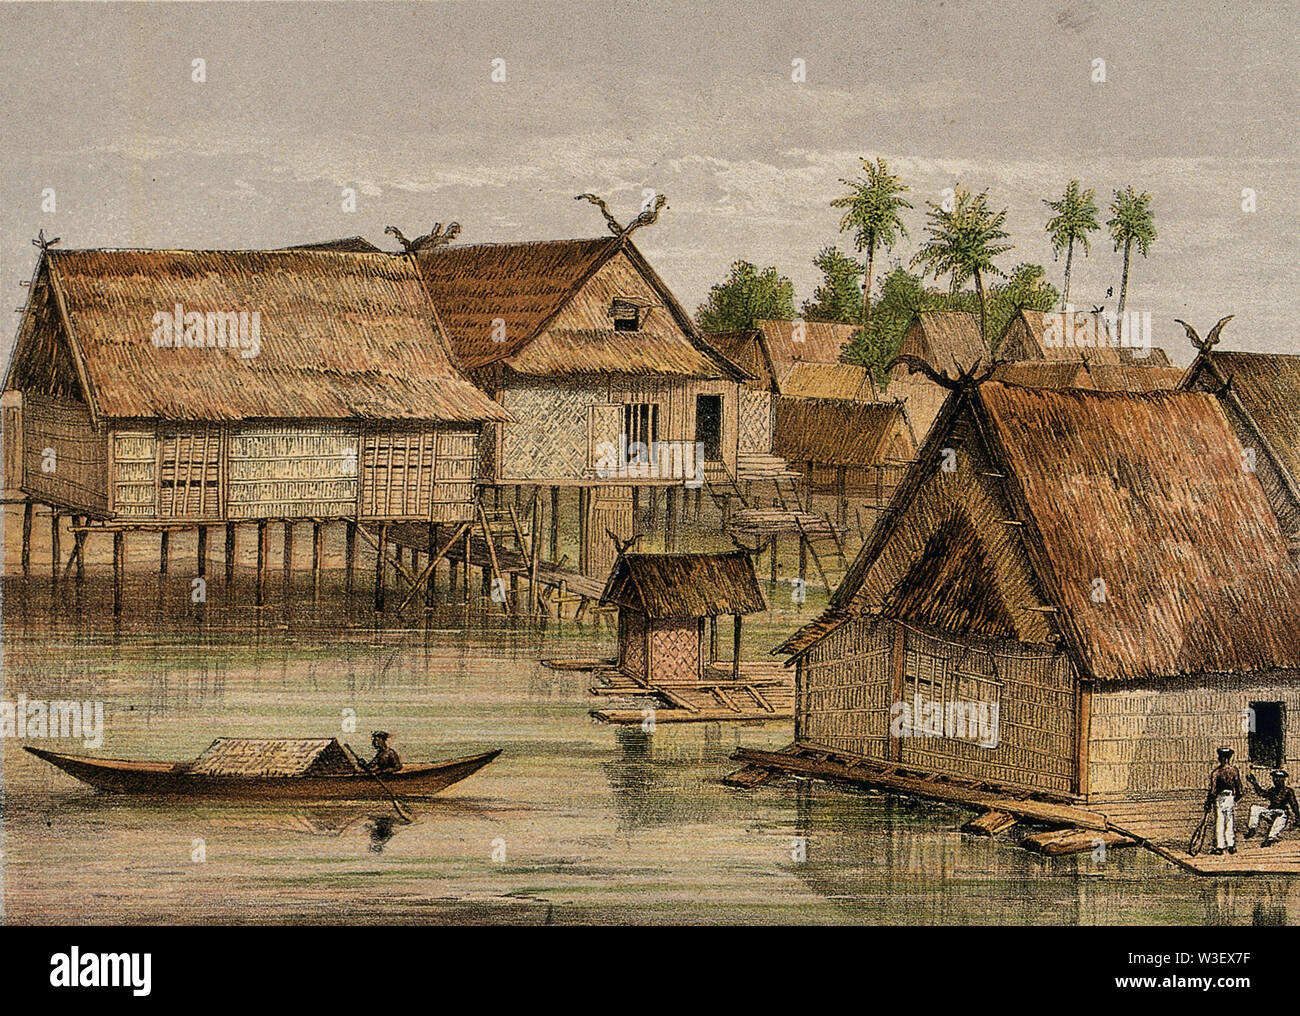 Borneo  a village raised on stilts above the water. Coloured lithograph by C.F. Kell after Carl Bock. - Stock Image